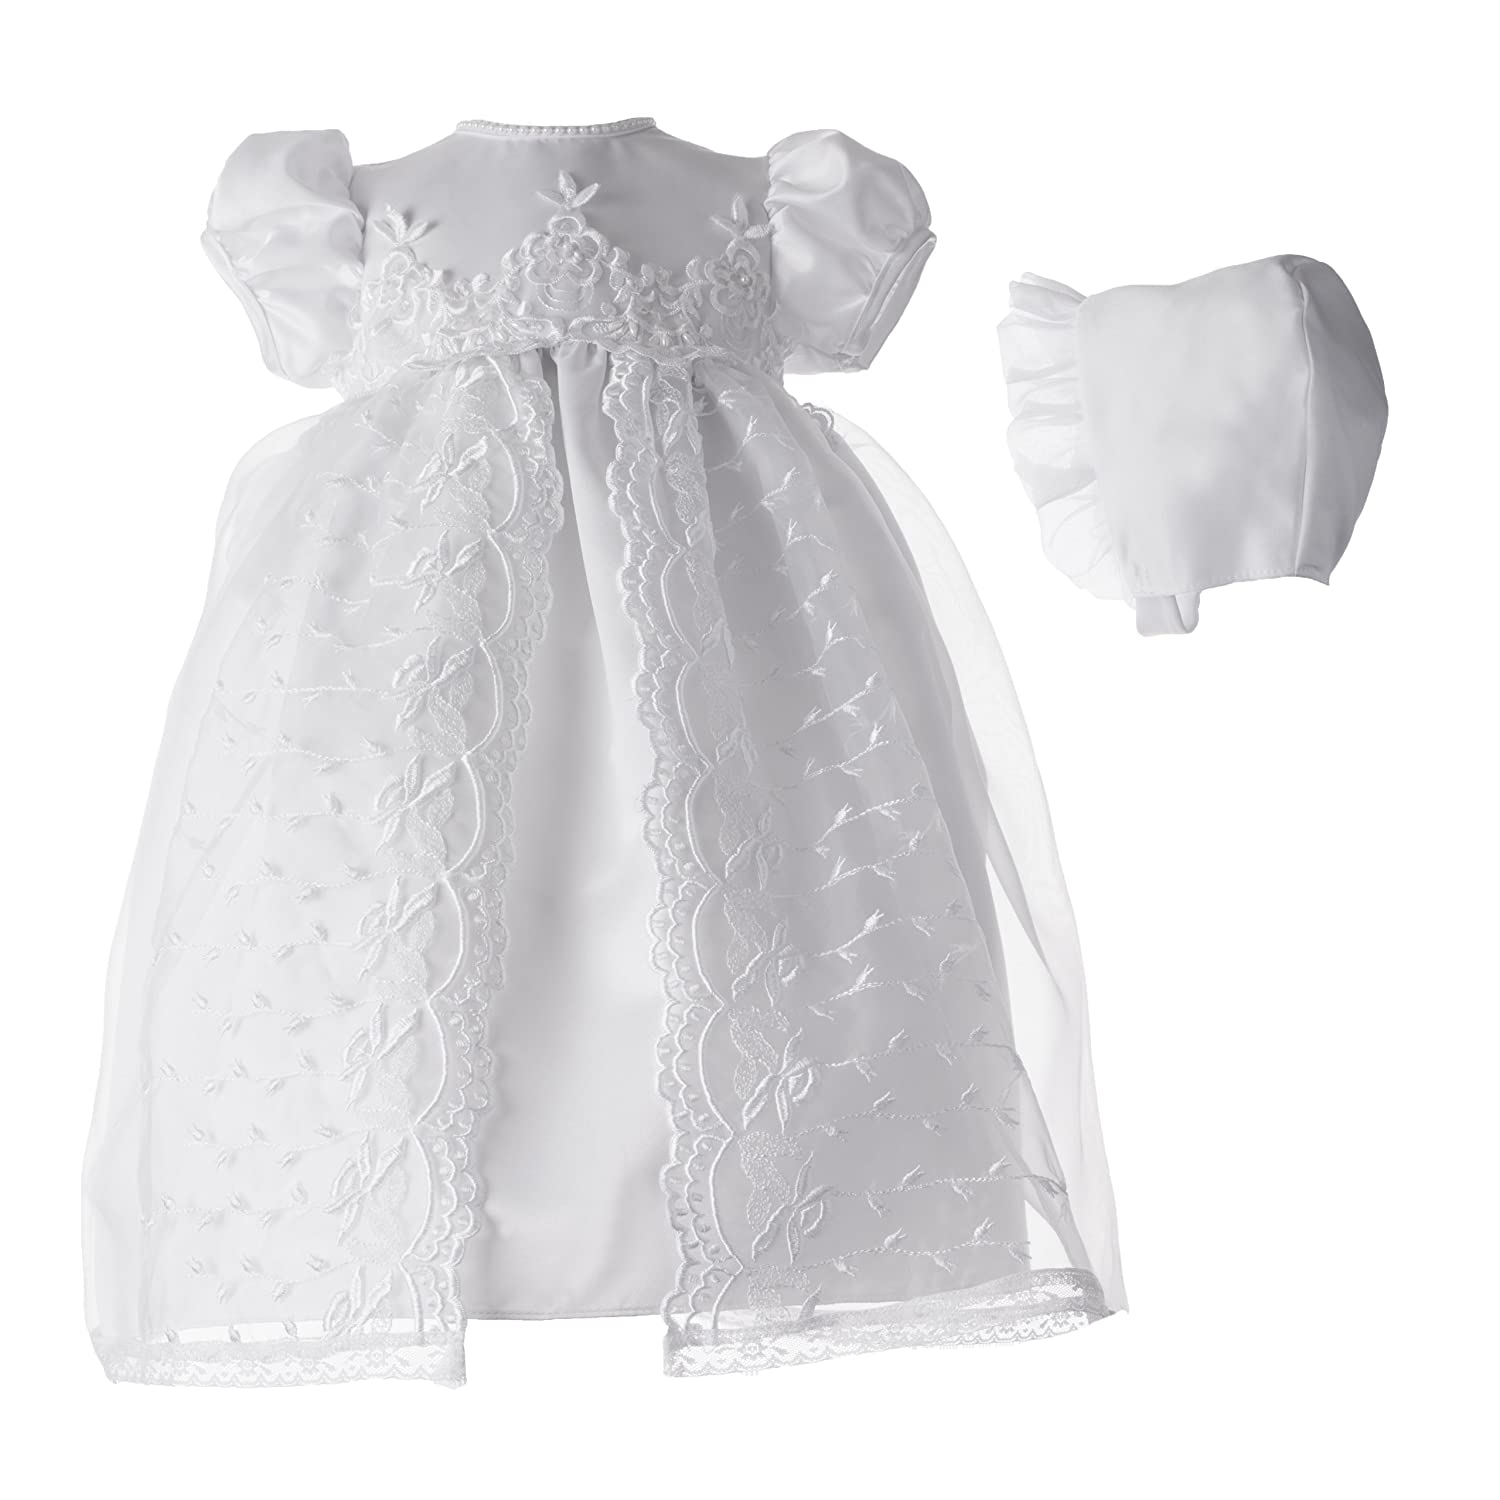 45721f9d9 Amazon.com: Lauren Madison baby girl Christening Baptism Newborn Embroidered  Satin Dress Gown: Infant And Toddler Christening Apparel: Clothing